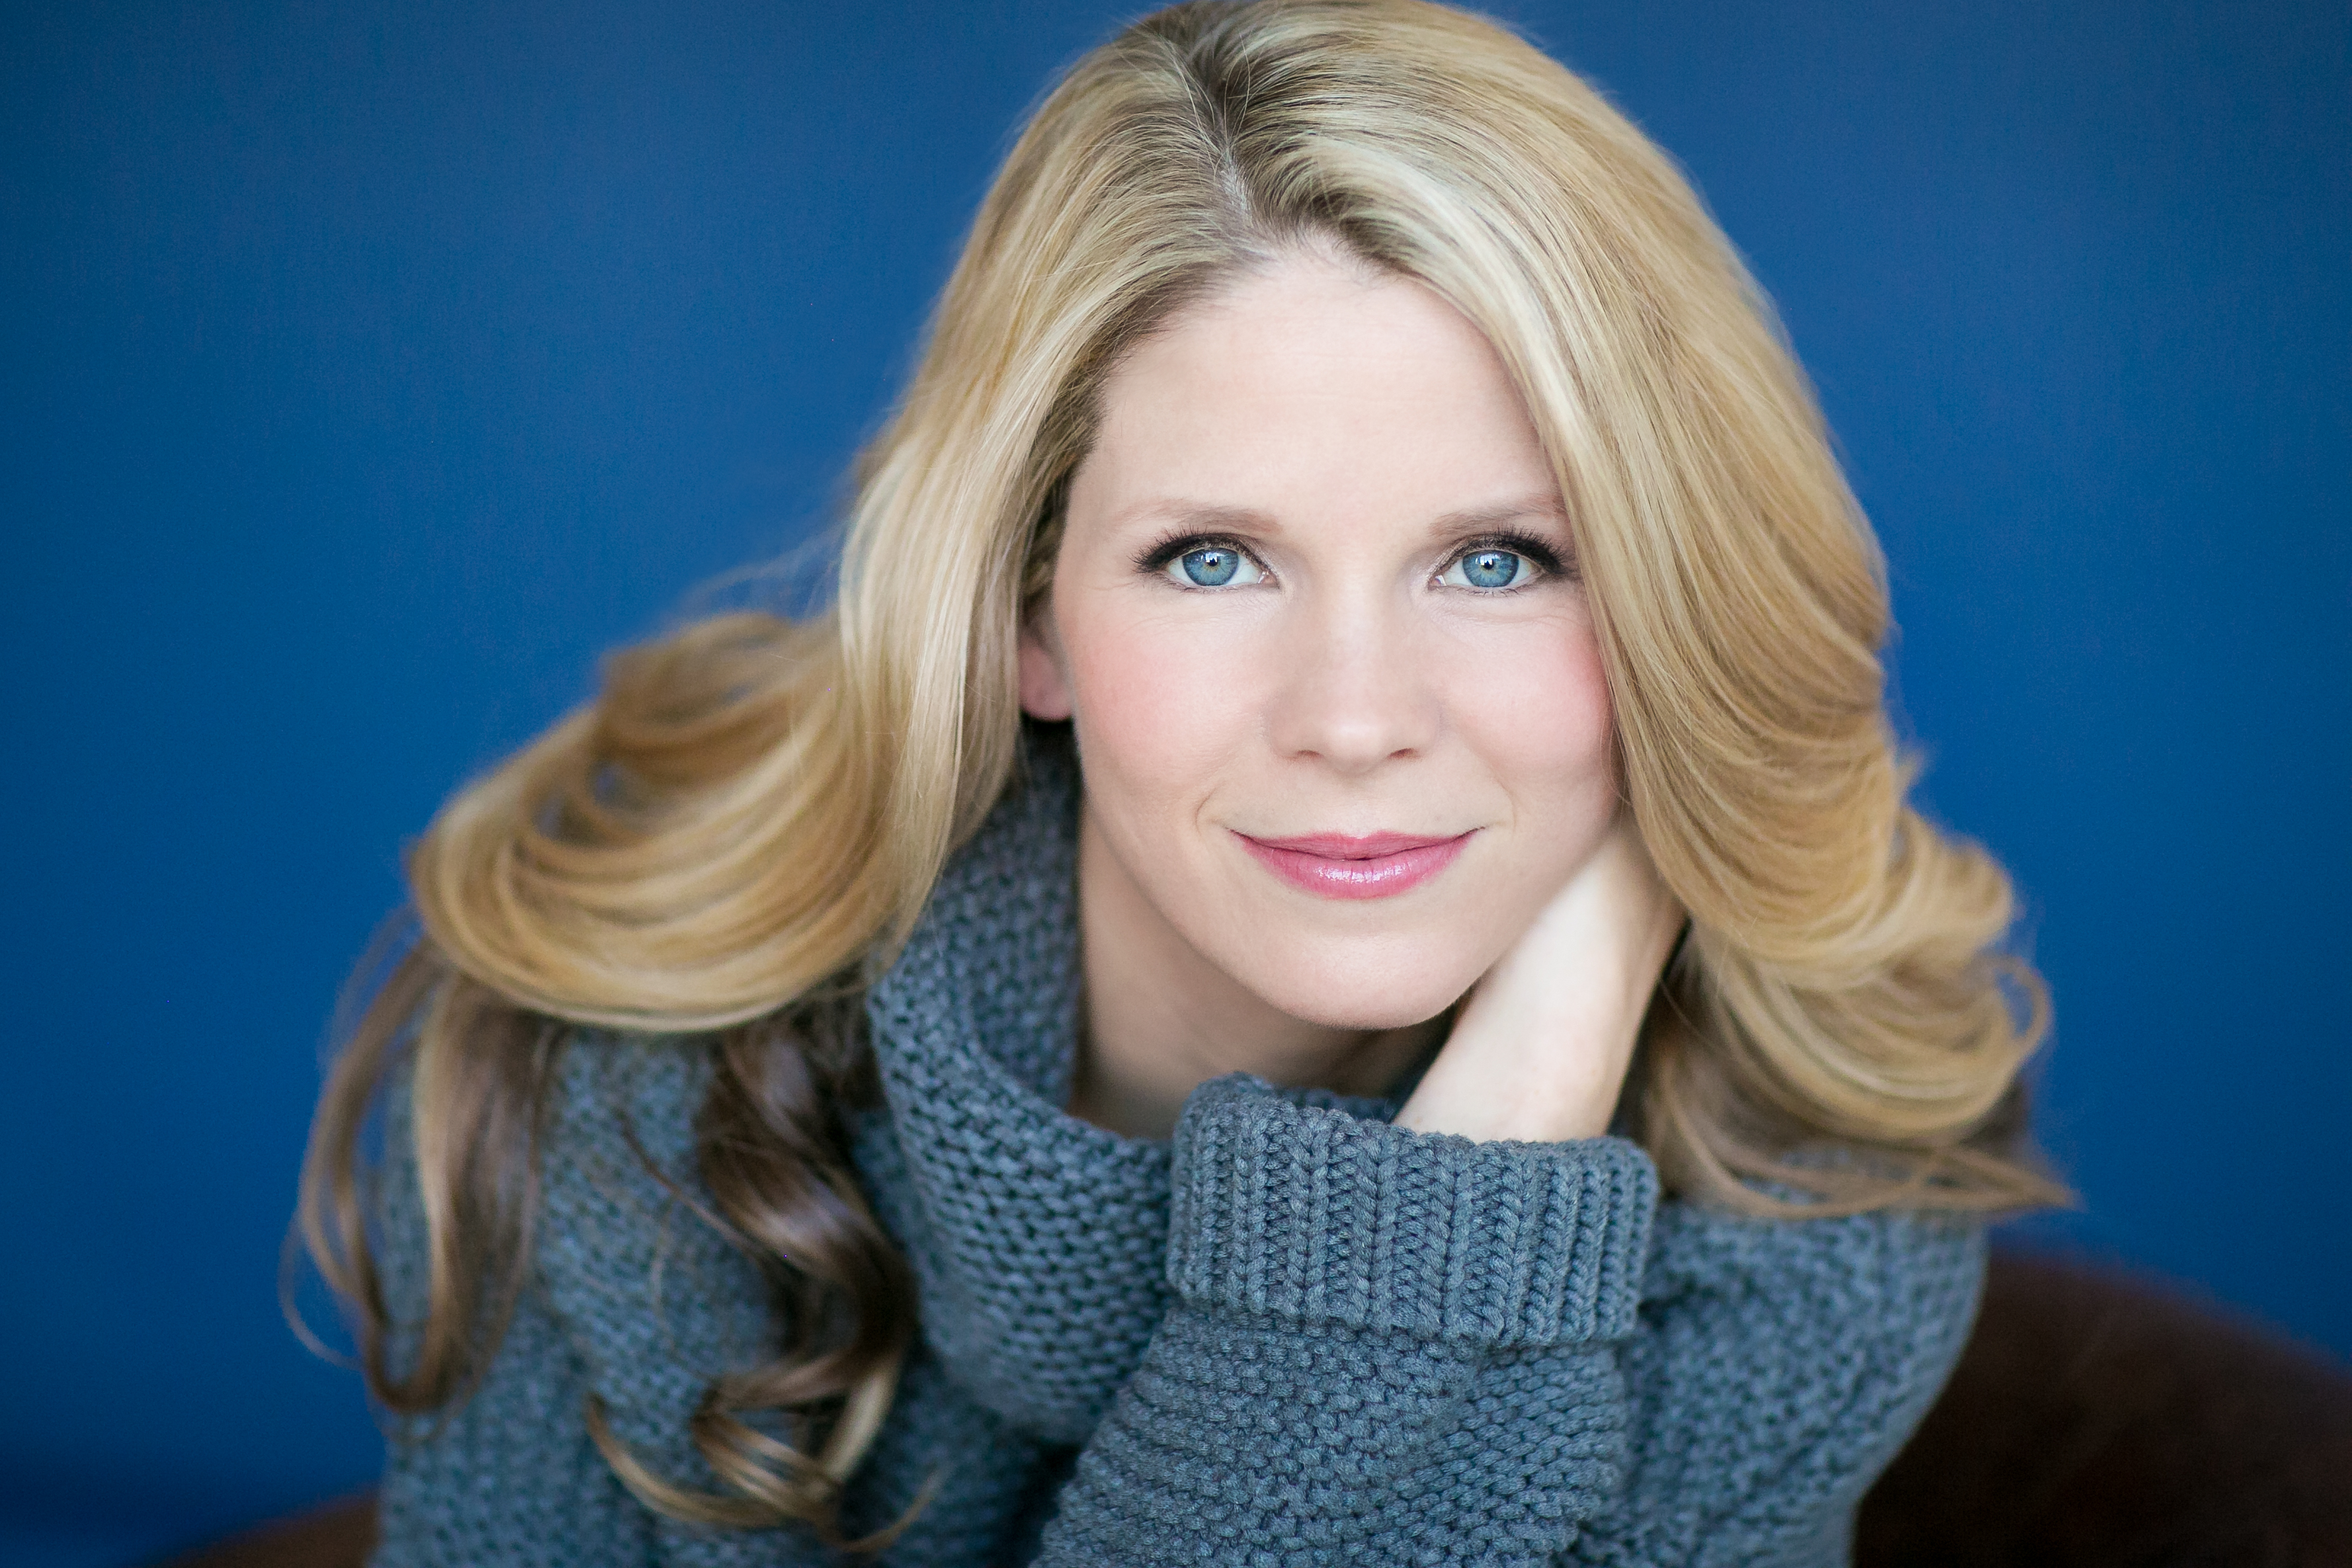 BWW Review: Seattle Children's Theatre's Gala Sparkles with Kelli O'Hara